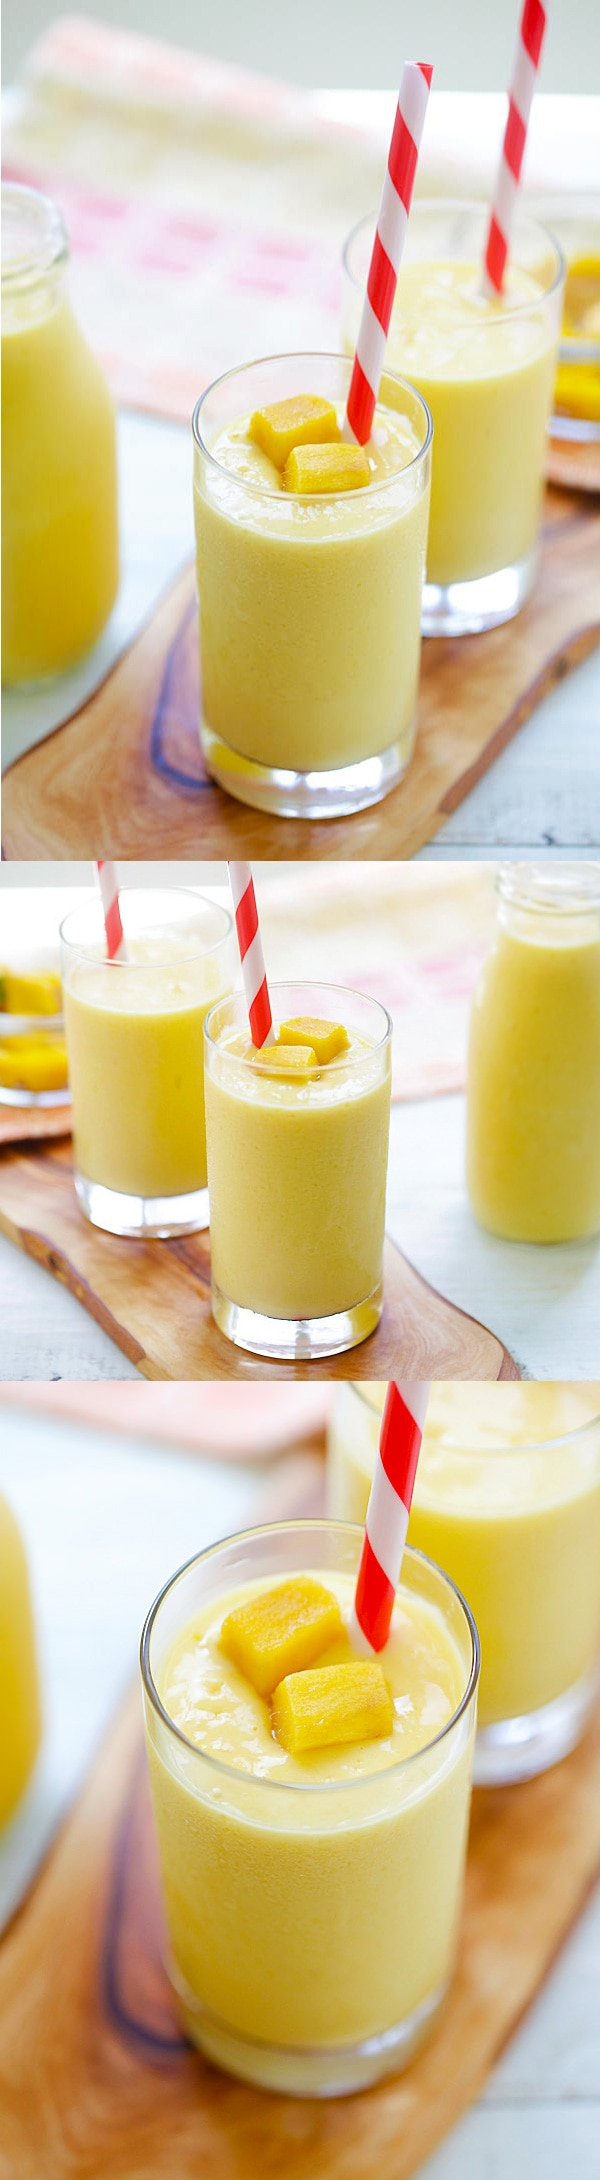 Mango Lassi - a rich, popular Indian smoothie with fresh mango, yogurt and honey. Easy recipe that takes 10 mins to make! | rasamalaysia.com